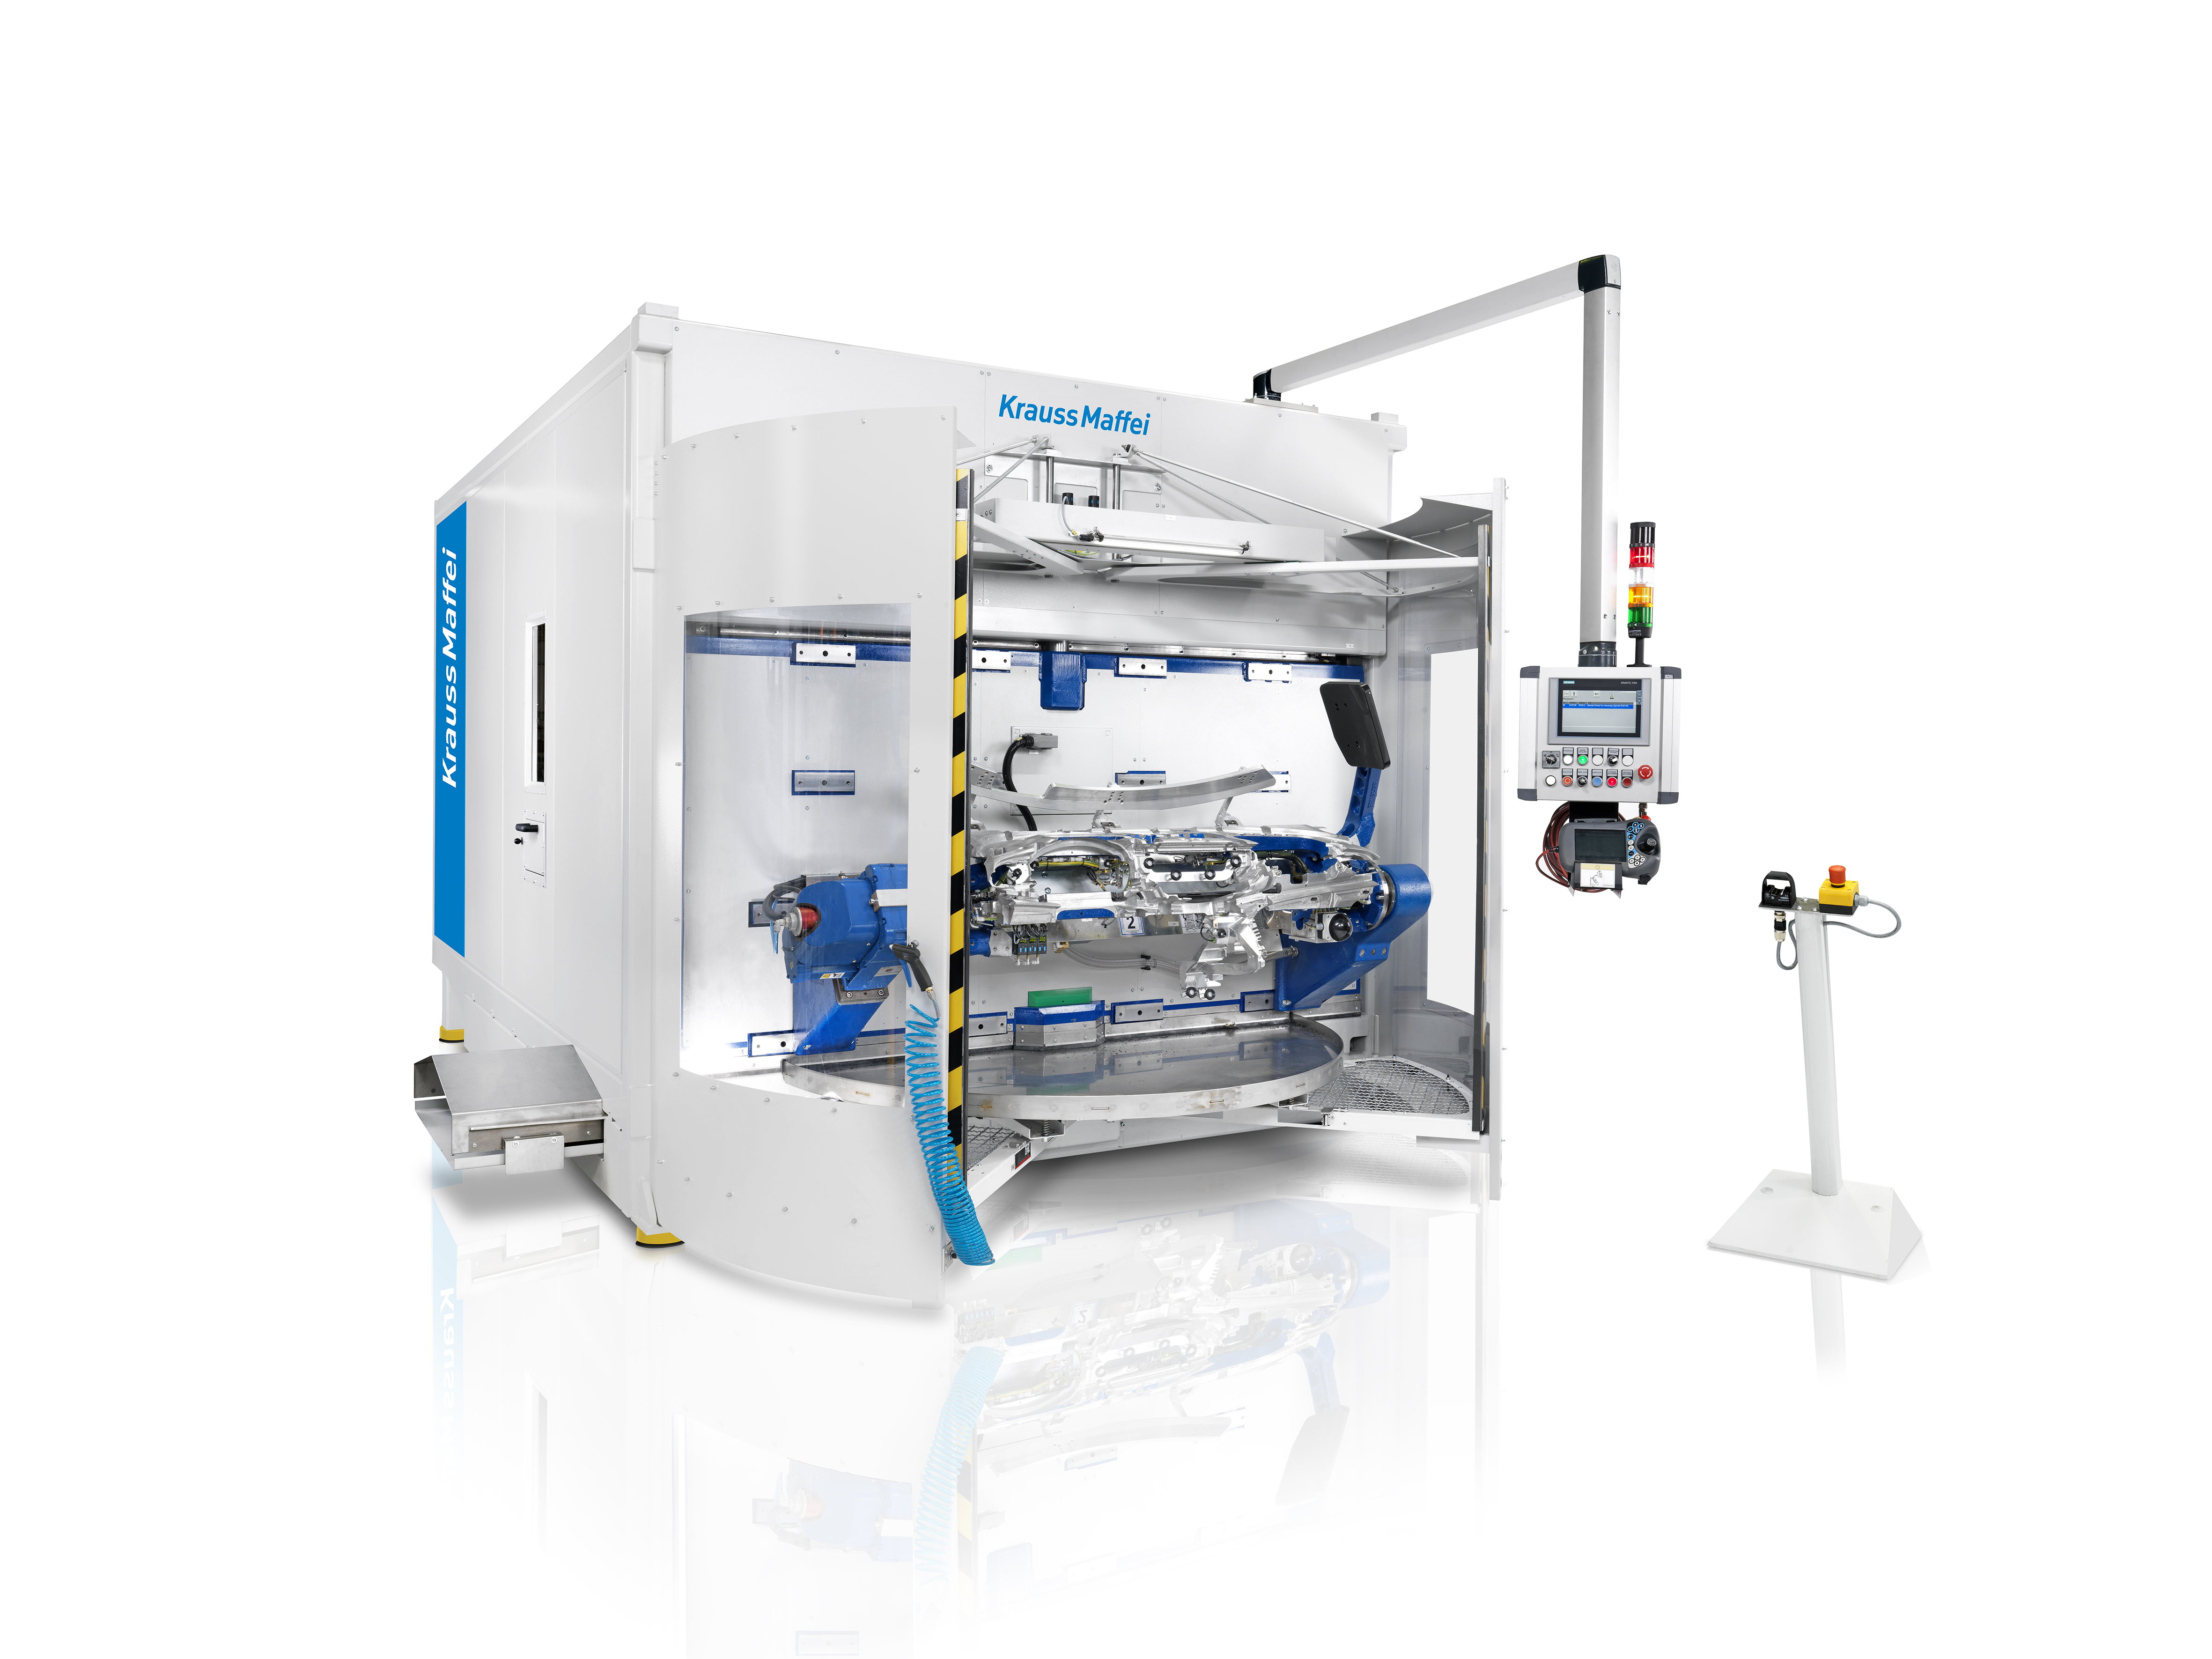 MultiStar, the mobile robotic processing cell for post-processing of foam-backed interior components. (Source: KraussMaffei)